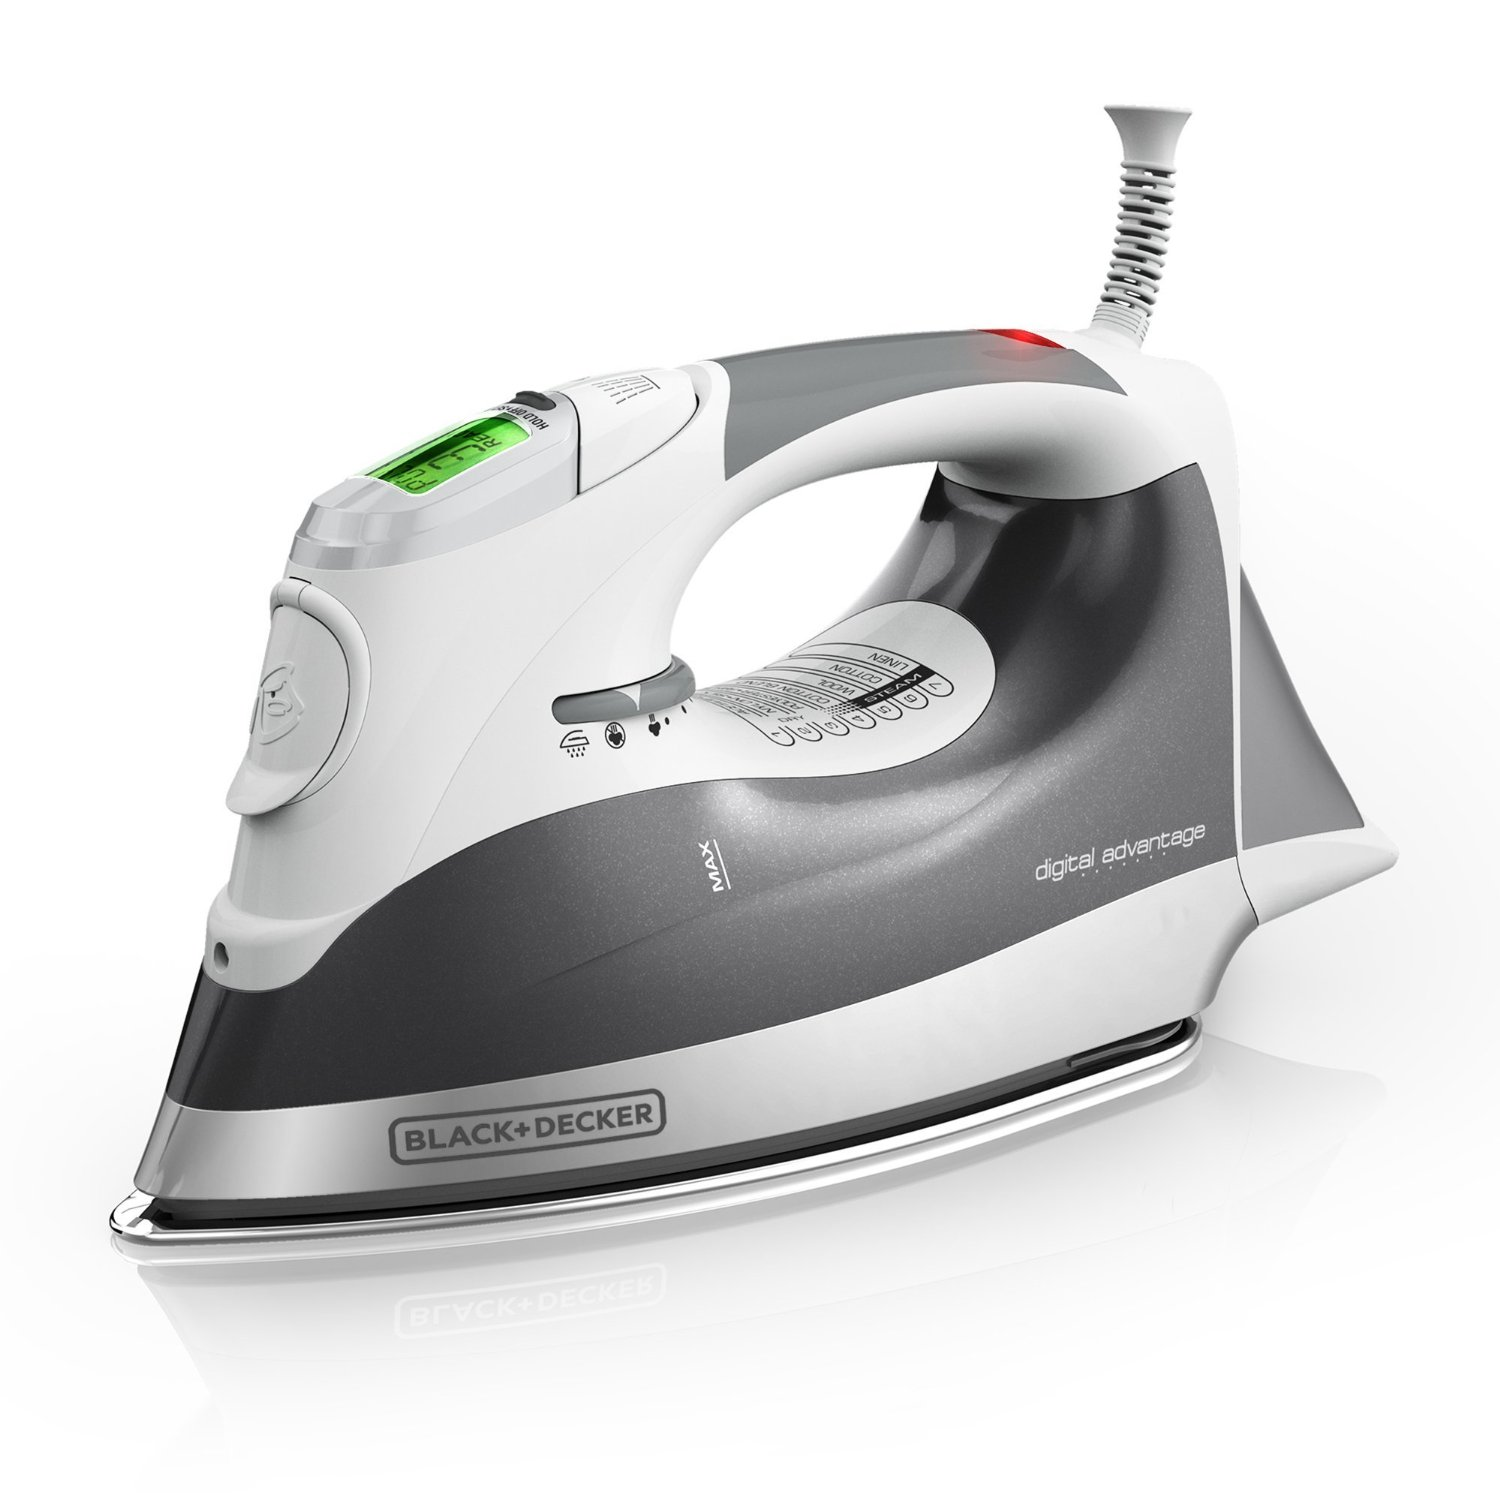 Steam Iron For Clothes ~ Best steam irons for clothes in clothing iron reviews